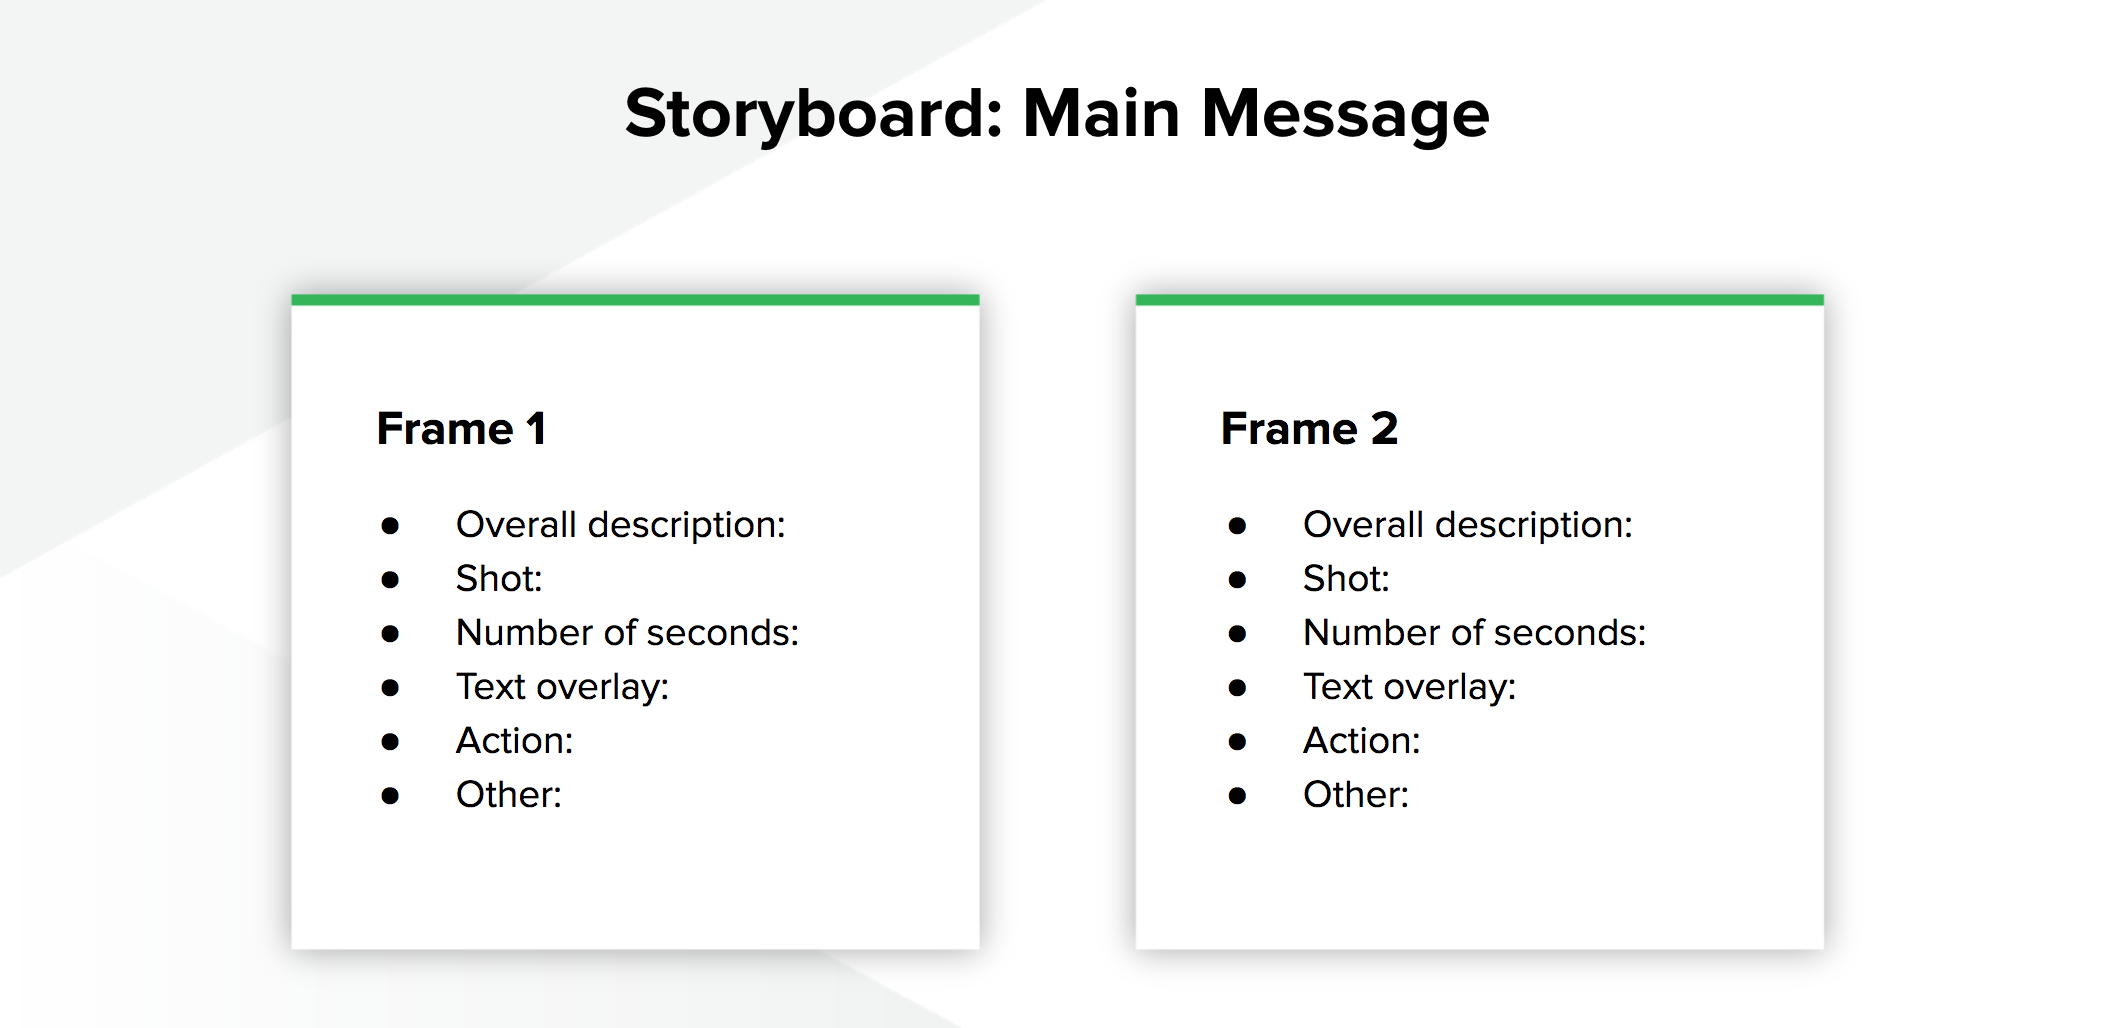 Storyboard Main Message